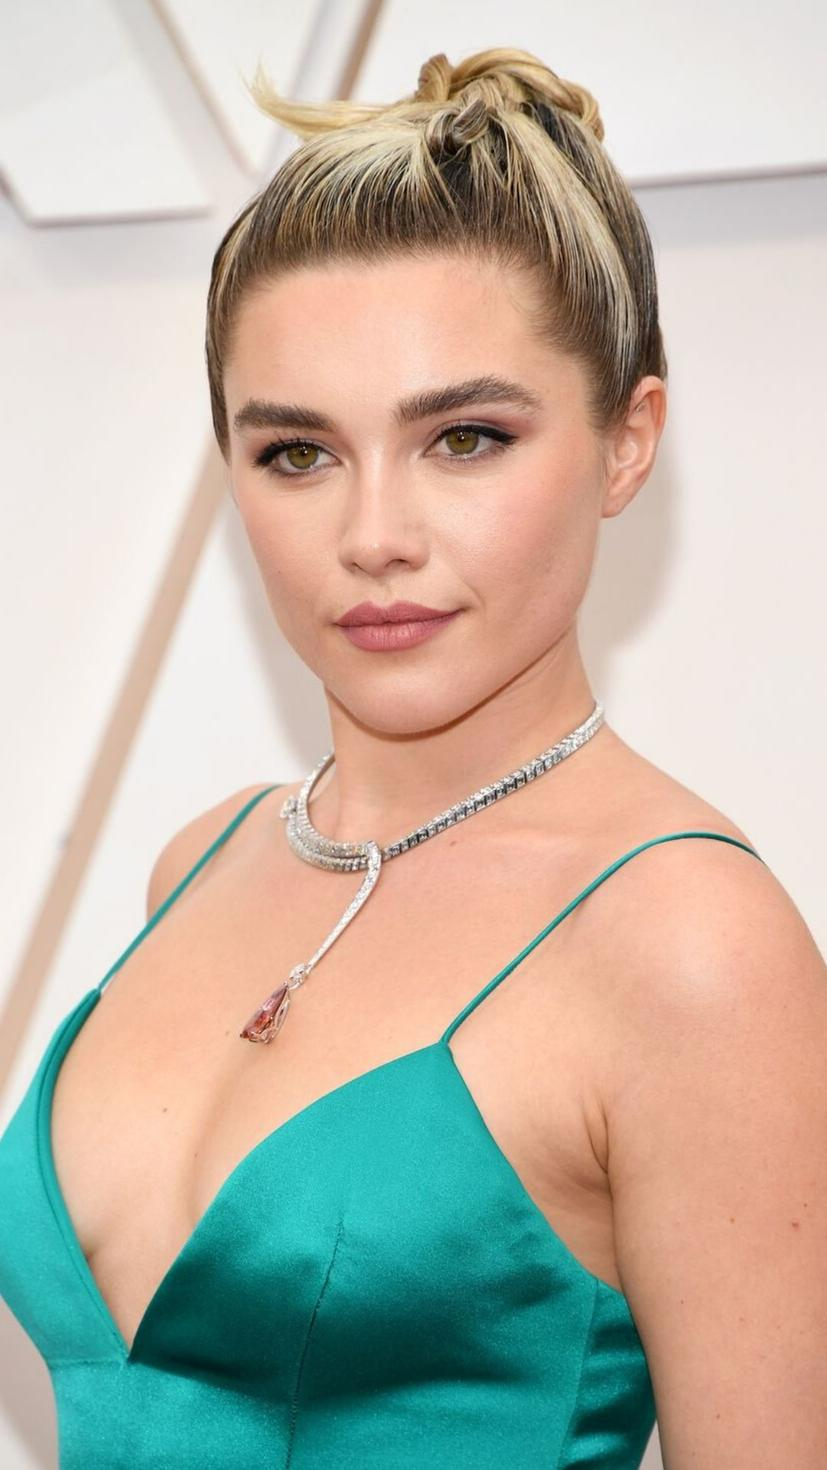 We're quaking at such a wonderful look achieved by Florence Pugh's up-do and dramatic eyeliner. Her lipstick also complimented the colour of her dress beautifully! Perfection!